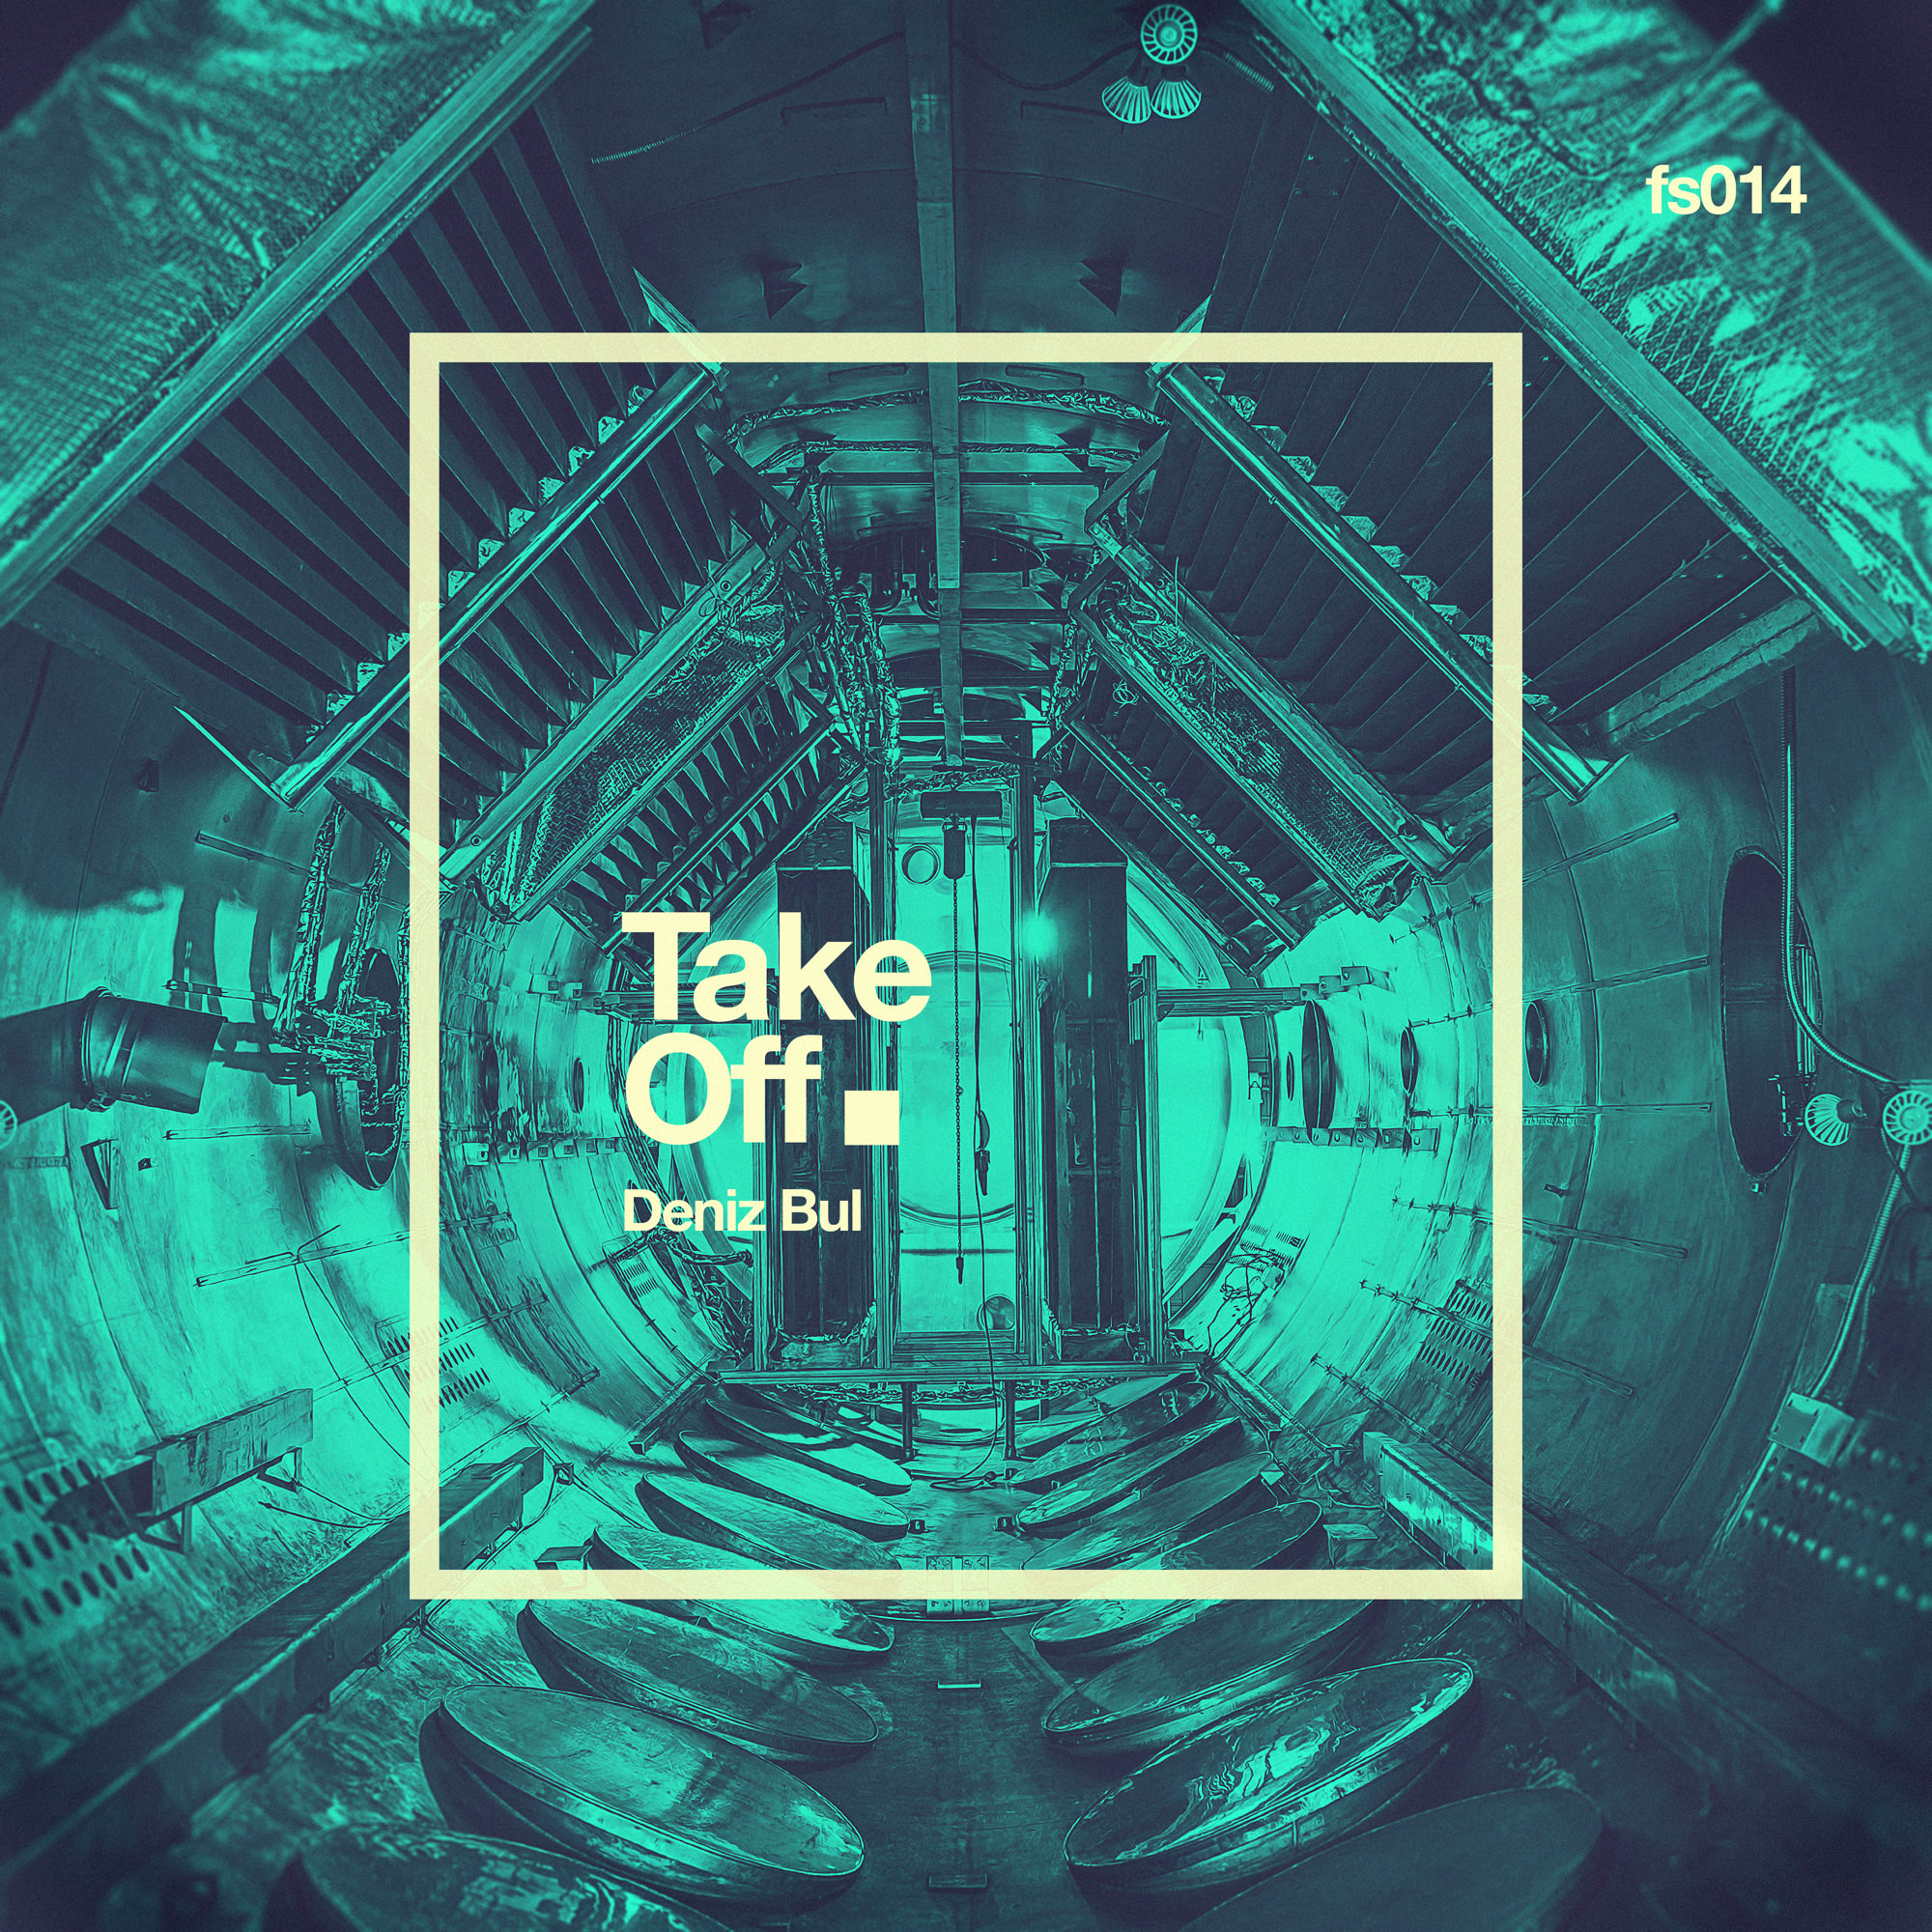 TAKE OFF - DENIZ BULDeniz Bul is taking off. The Mission: Killing you softly with his upcoming three dance floor killers. After the mission is complete... sitting on a couch... flying thru the universe...